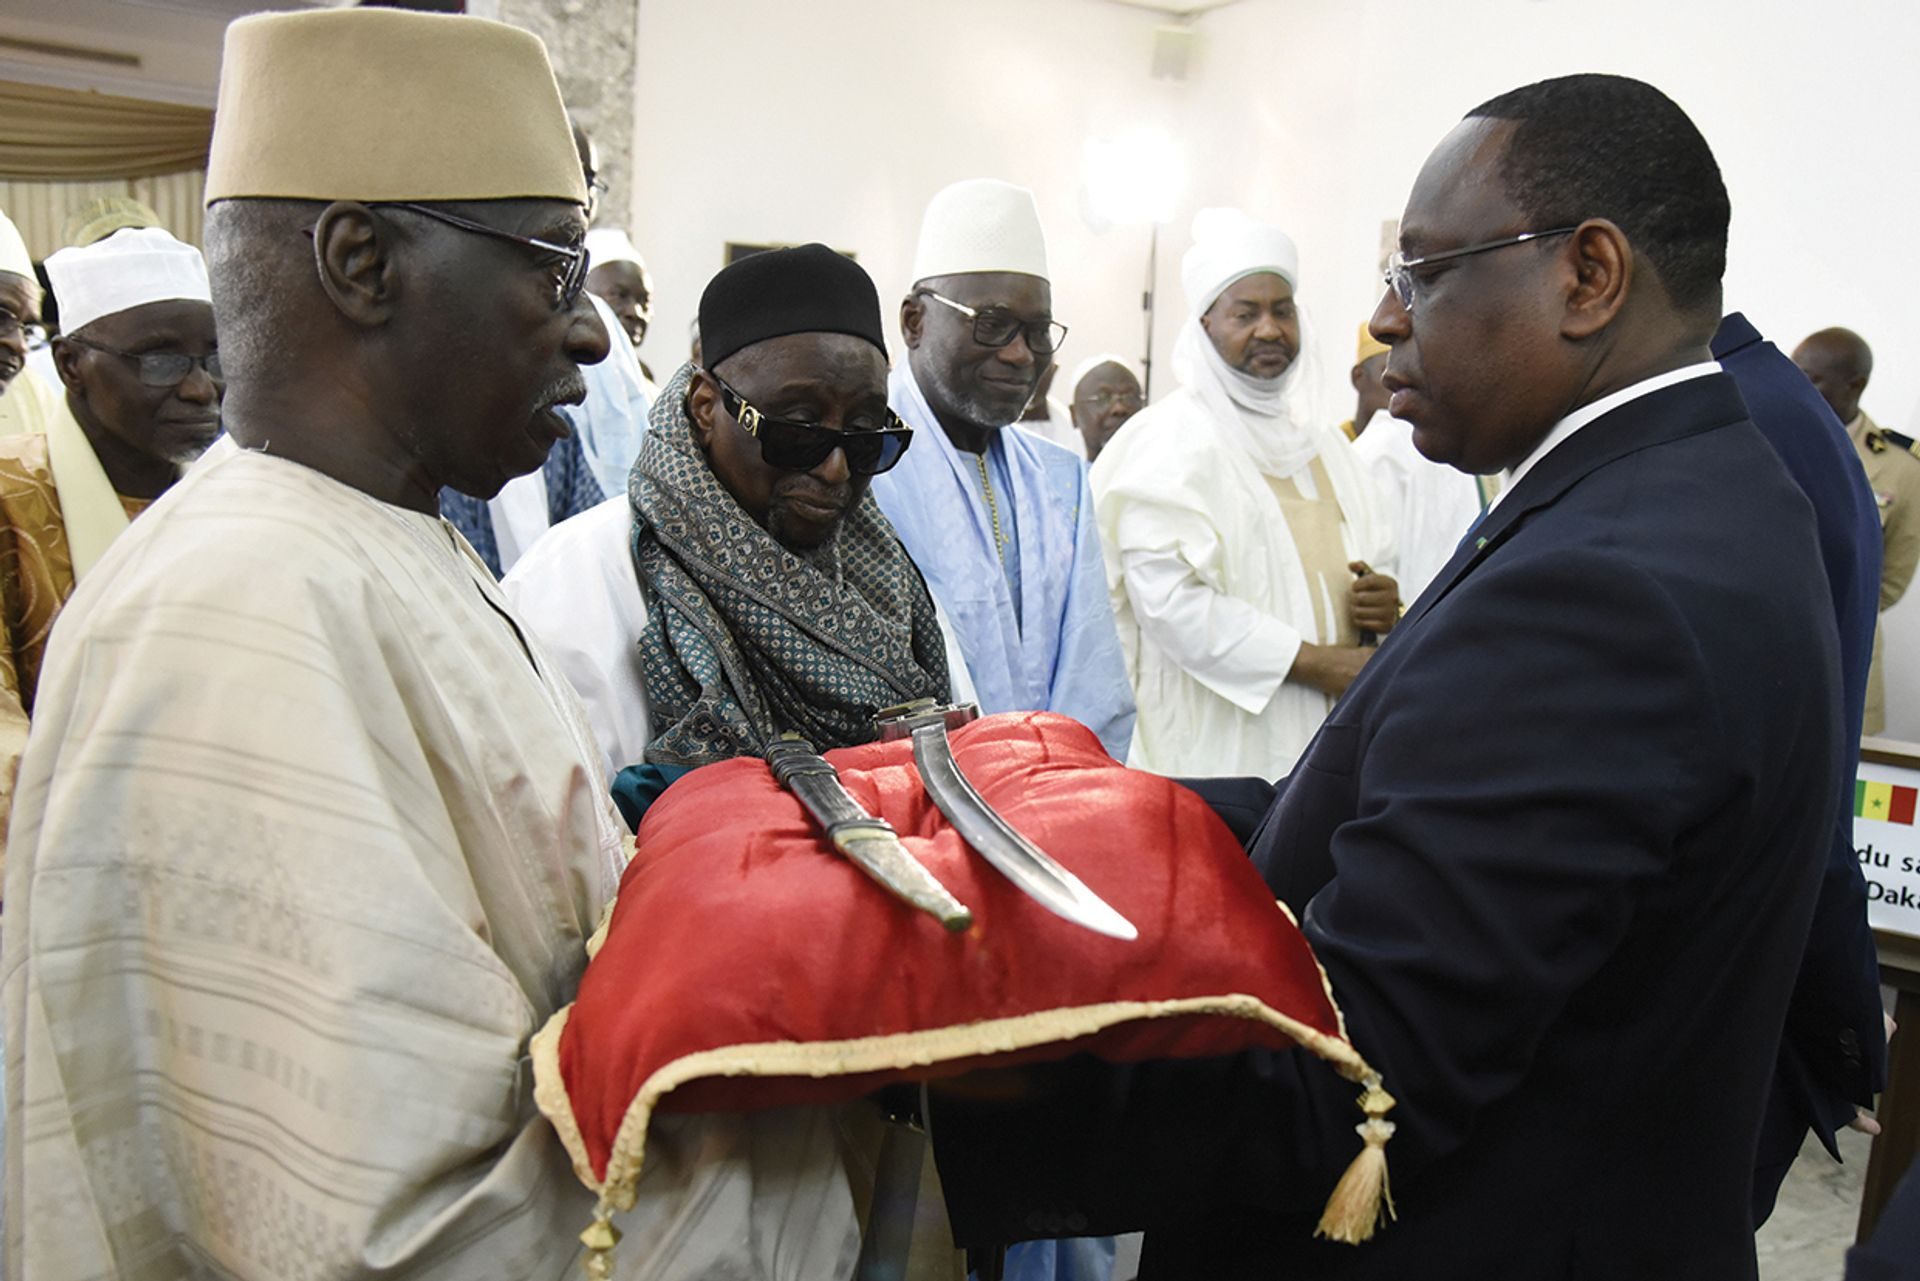 Senegal President Macky Sall, right, receives the sword El Hadj Omar Saidou Tall during a ceremony at the Palace of the Republic in Dakar, Senegal, on November 17, 2019 Photo: by Seyllour /AFP via Getty Images